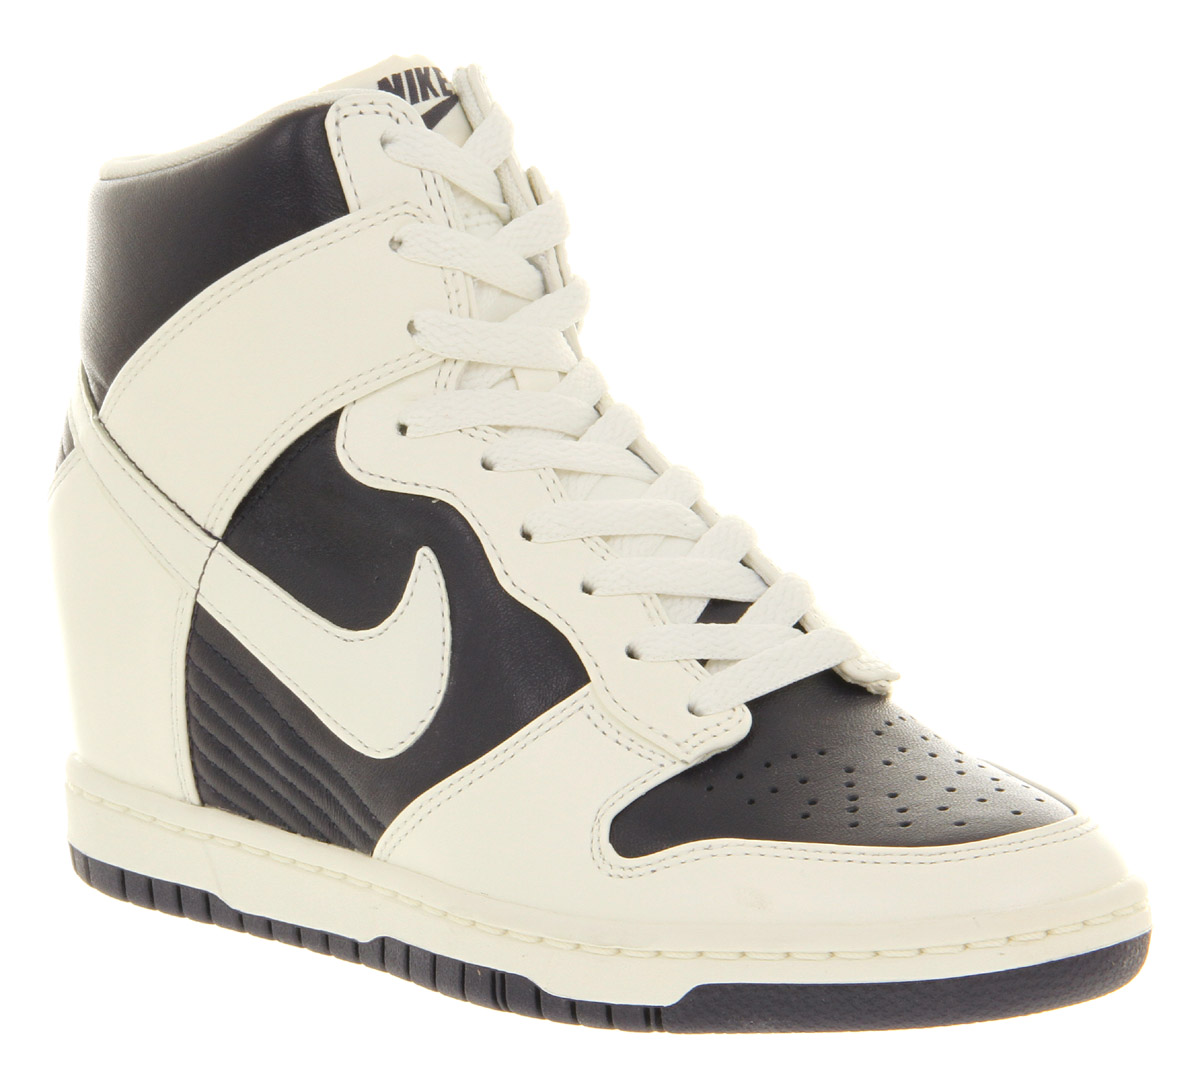 c92f18976119 switzerland nike dunk sky high womens wedge sneakers white shoes d249e  59118  usa gallery. womens wedge sneakers womens nike dunk 82d92 ad5e1